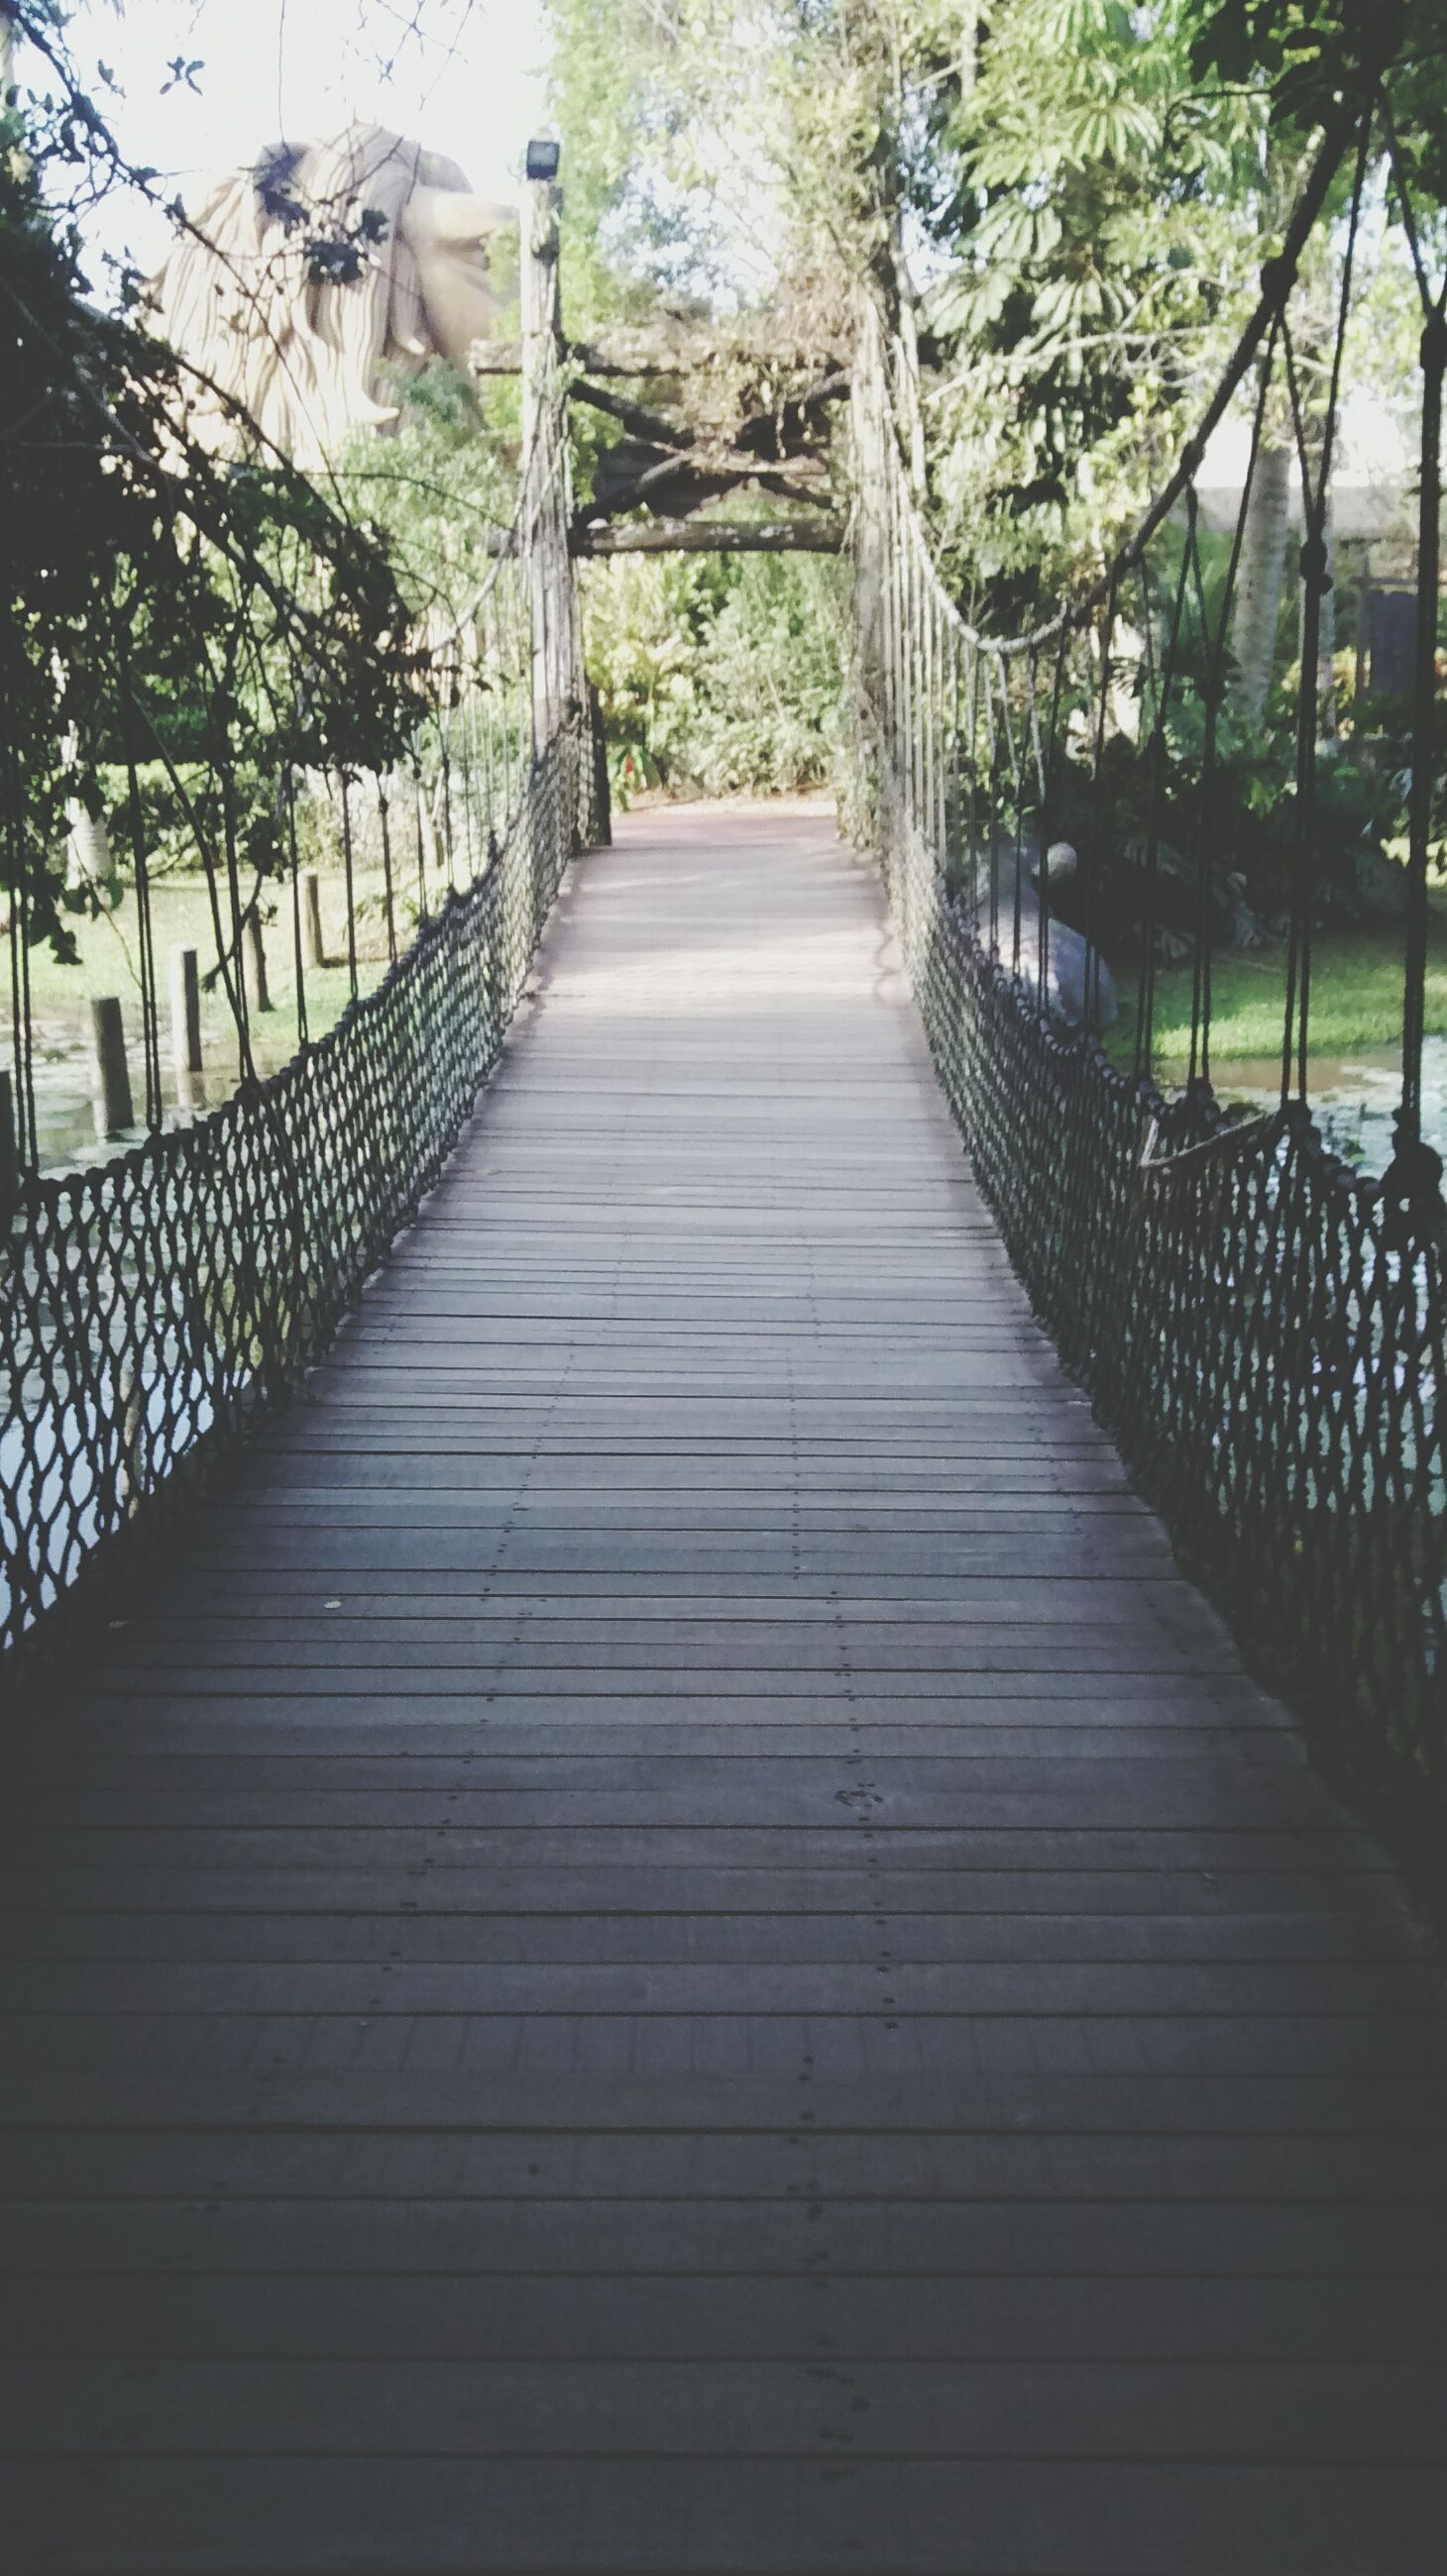 tree, railing, the way forward, built structure, architecture, fence, steps, footbridge, wood - material, sunlight, metal, diminishing perspective, growth, no people, day, gate, outdoors, building exterior, park - man made space, nature